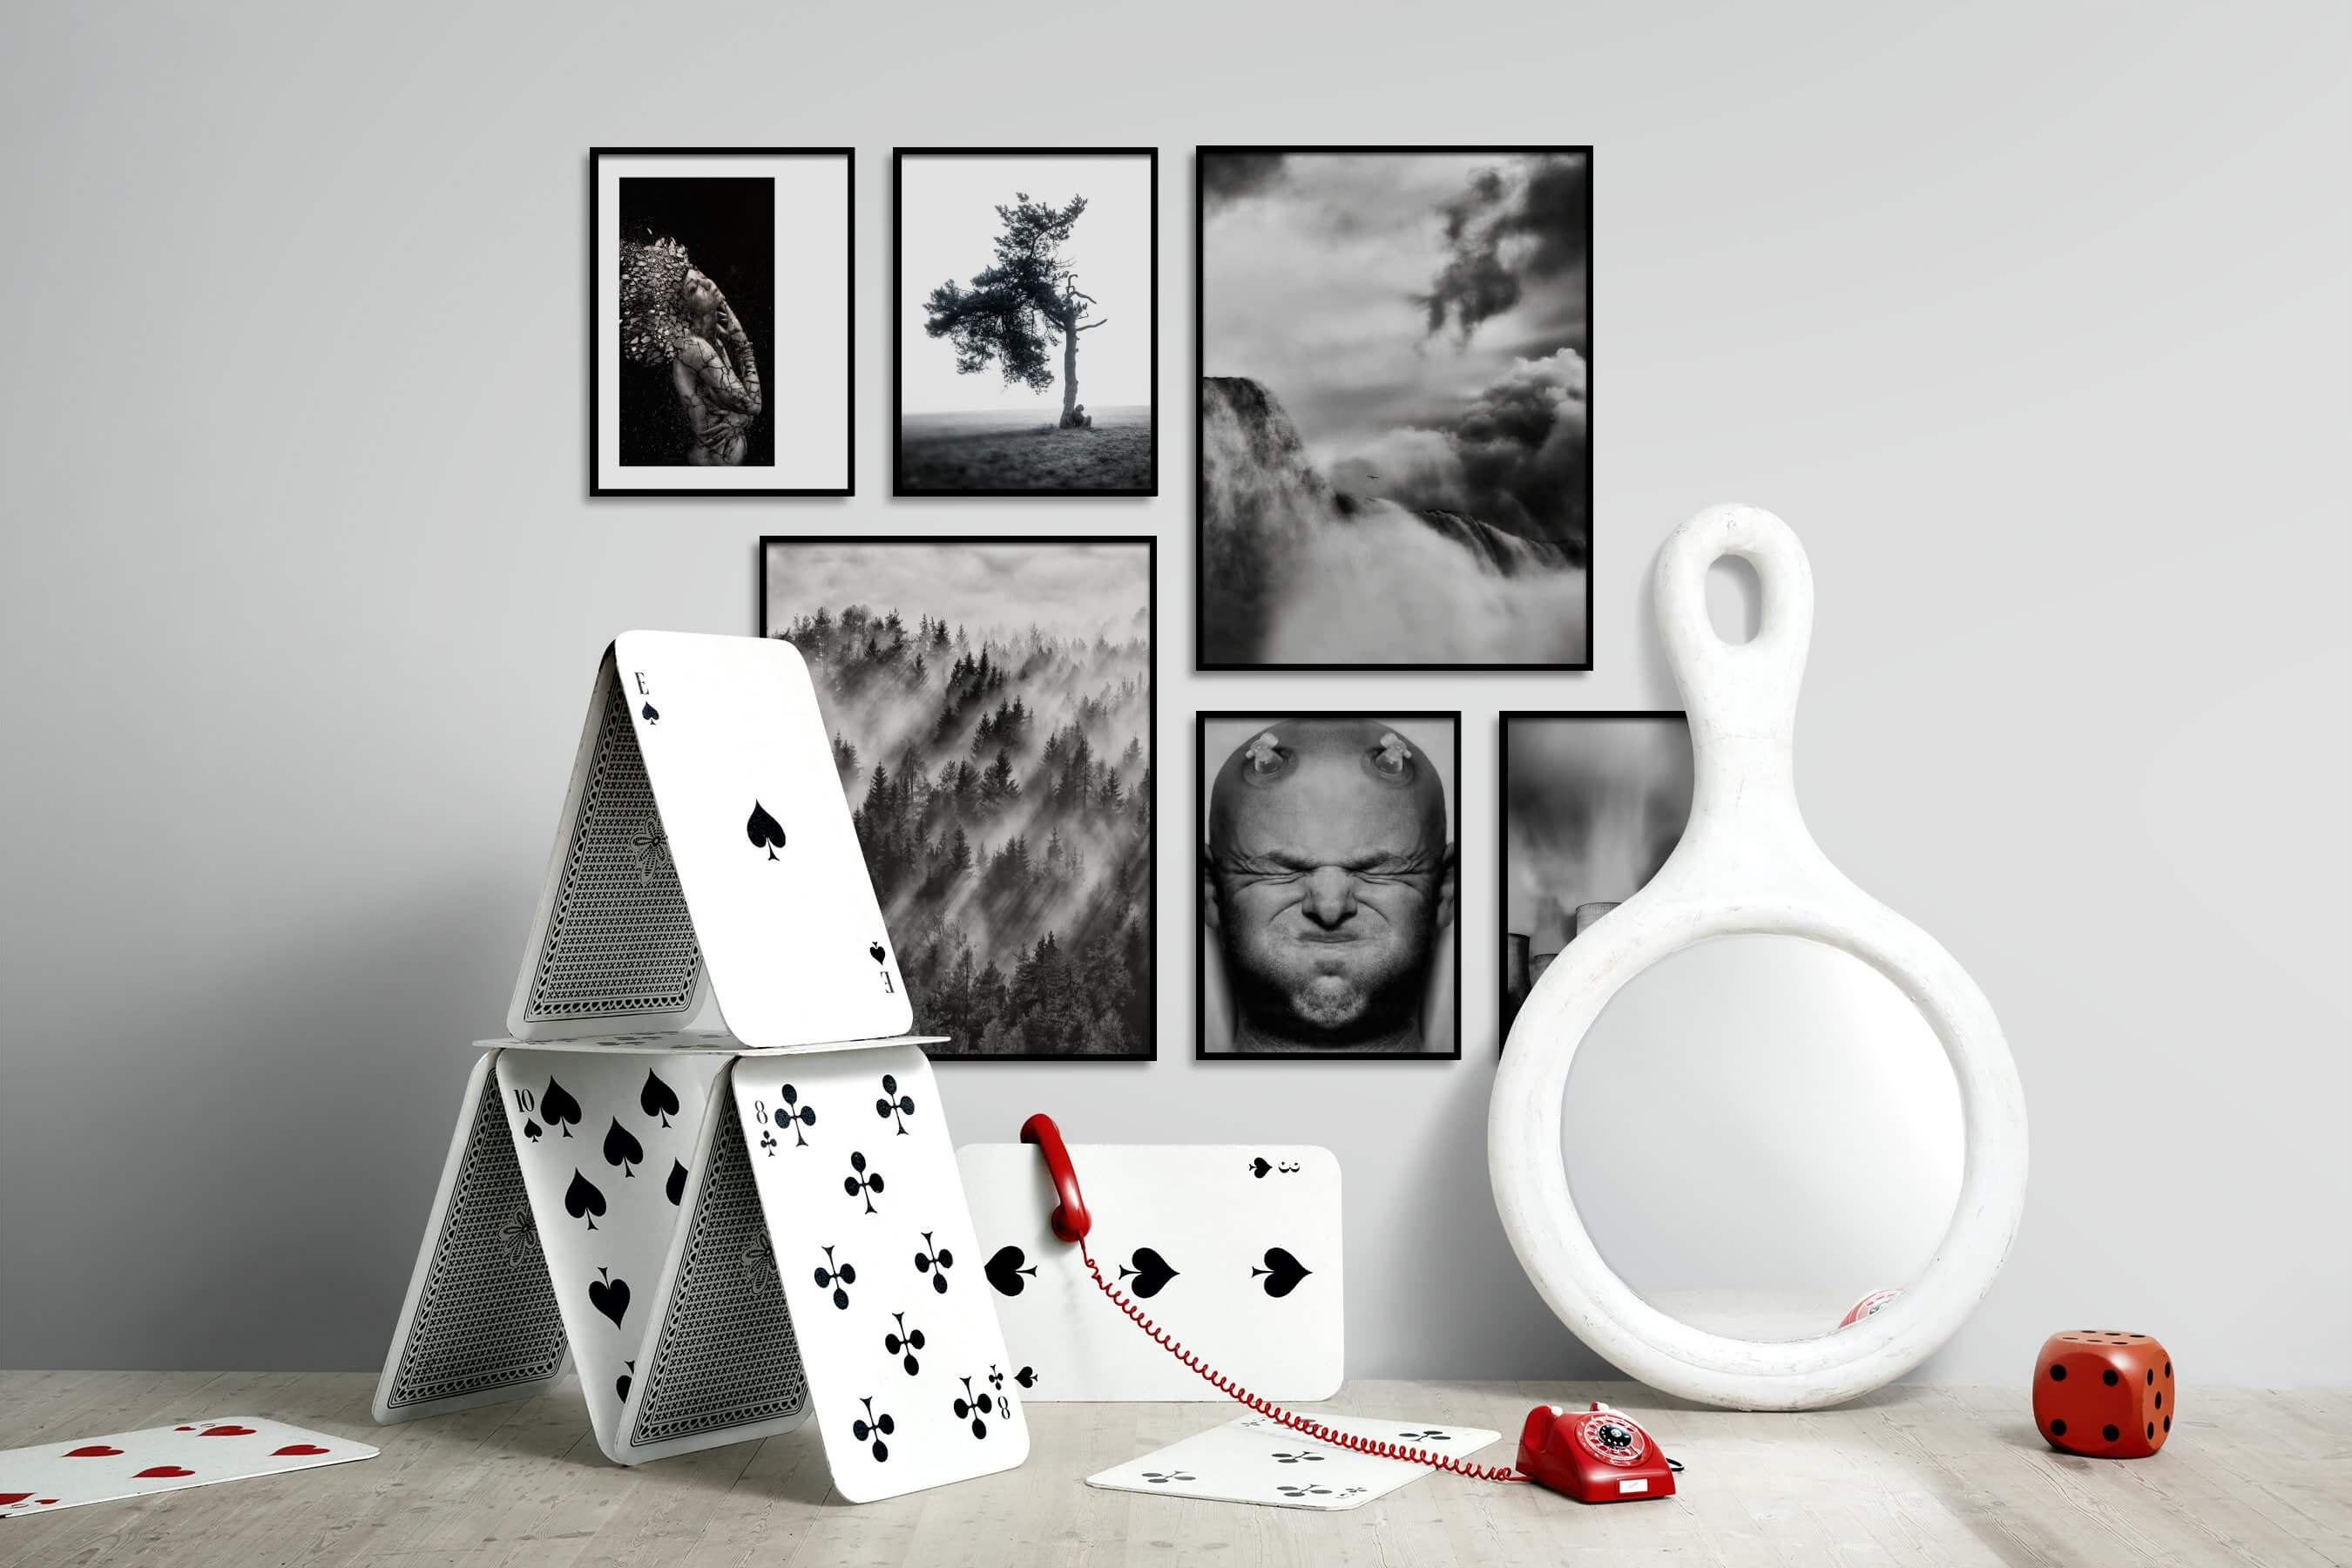 Gallery wall idea with six framed pictures arranged on a wall depicting Artsy, For the Moderate, Black & White, Bright Tones, Country Life, Nature, and Mindfulness